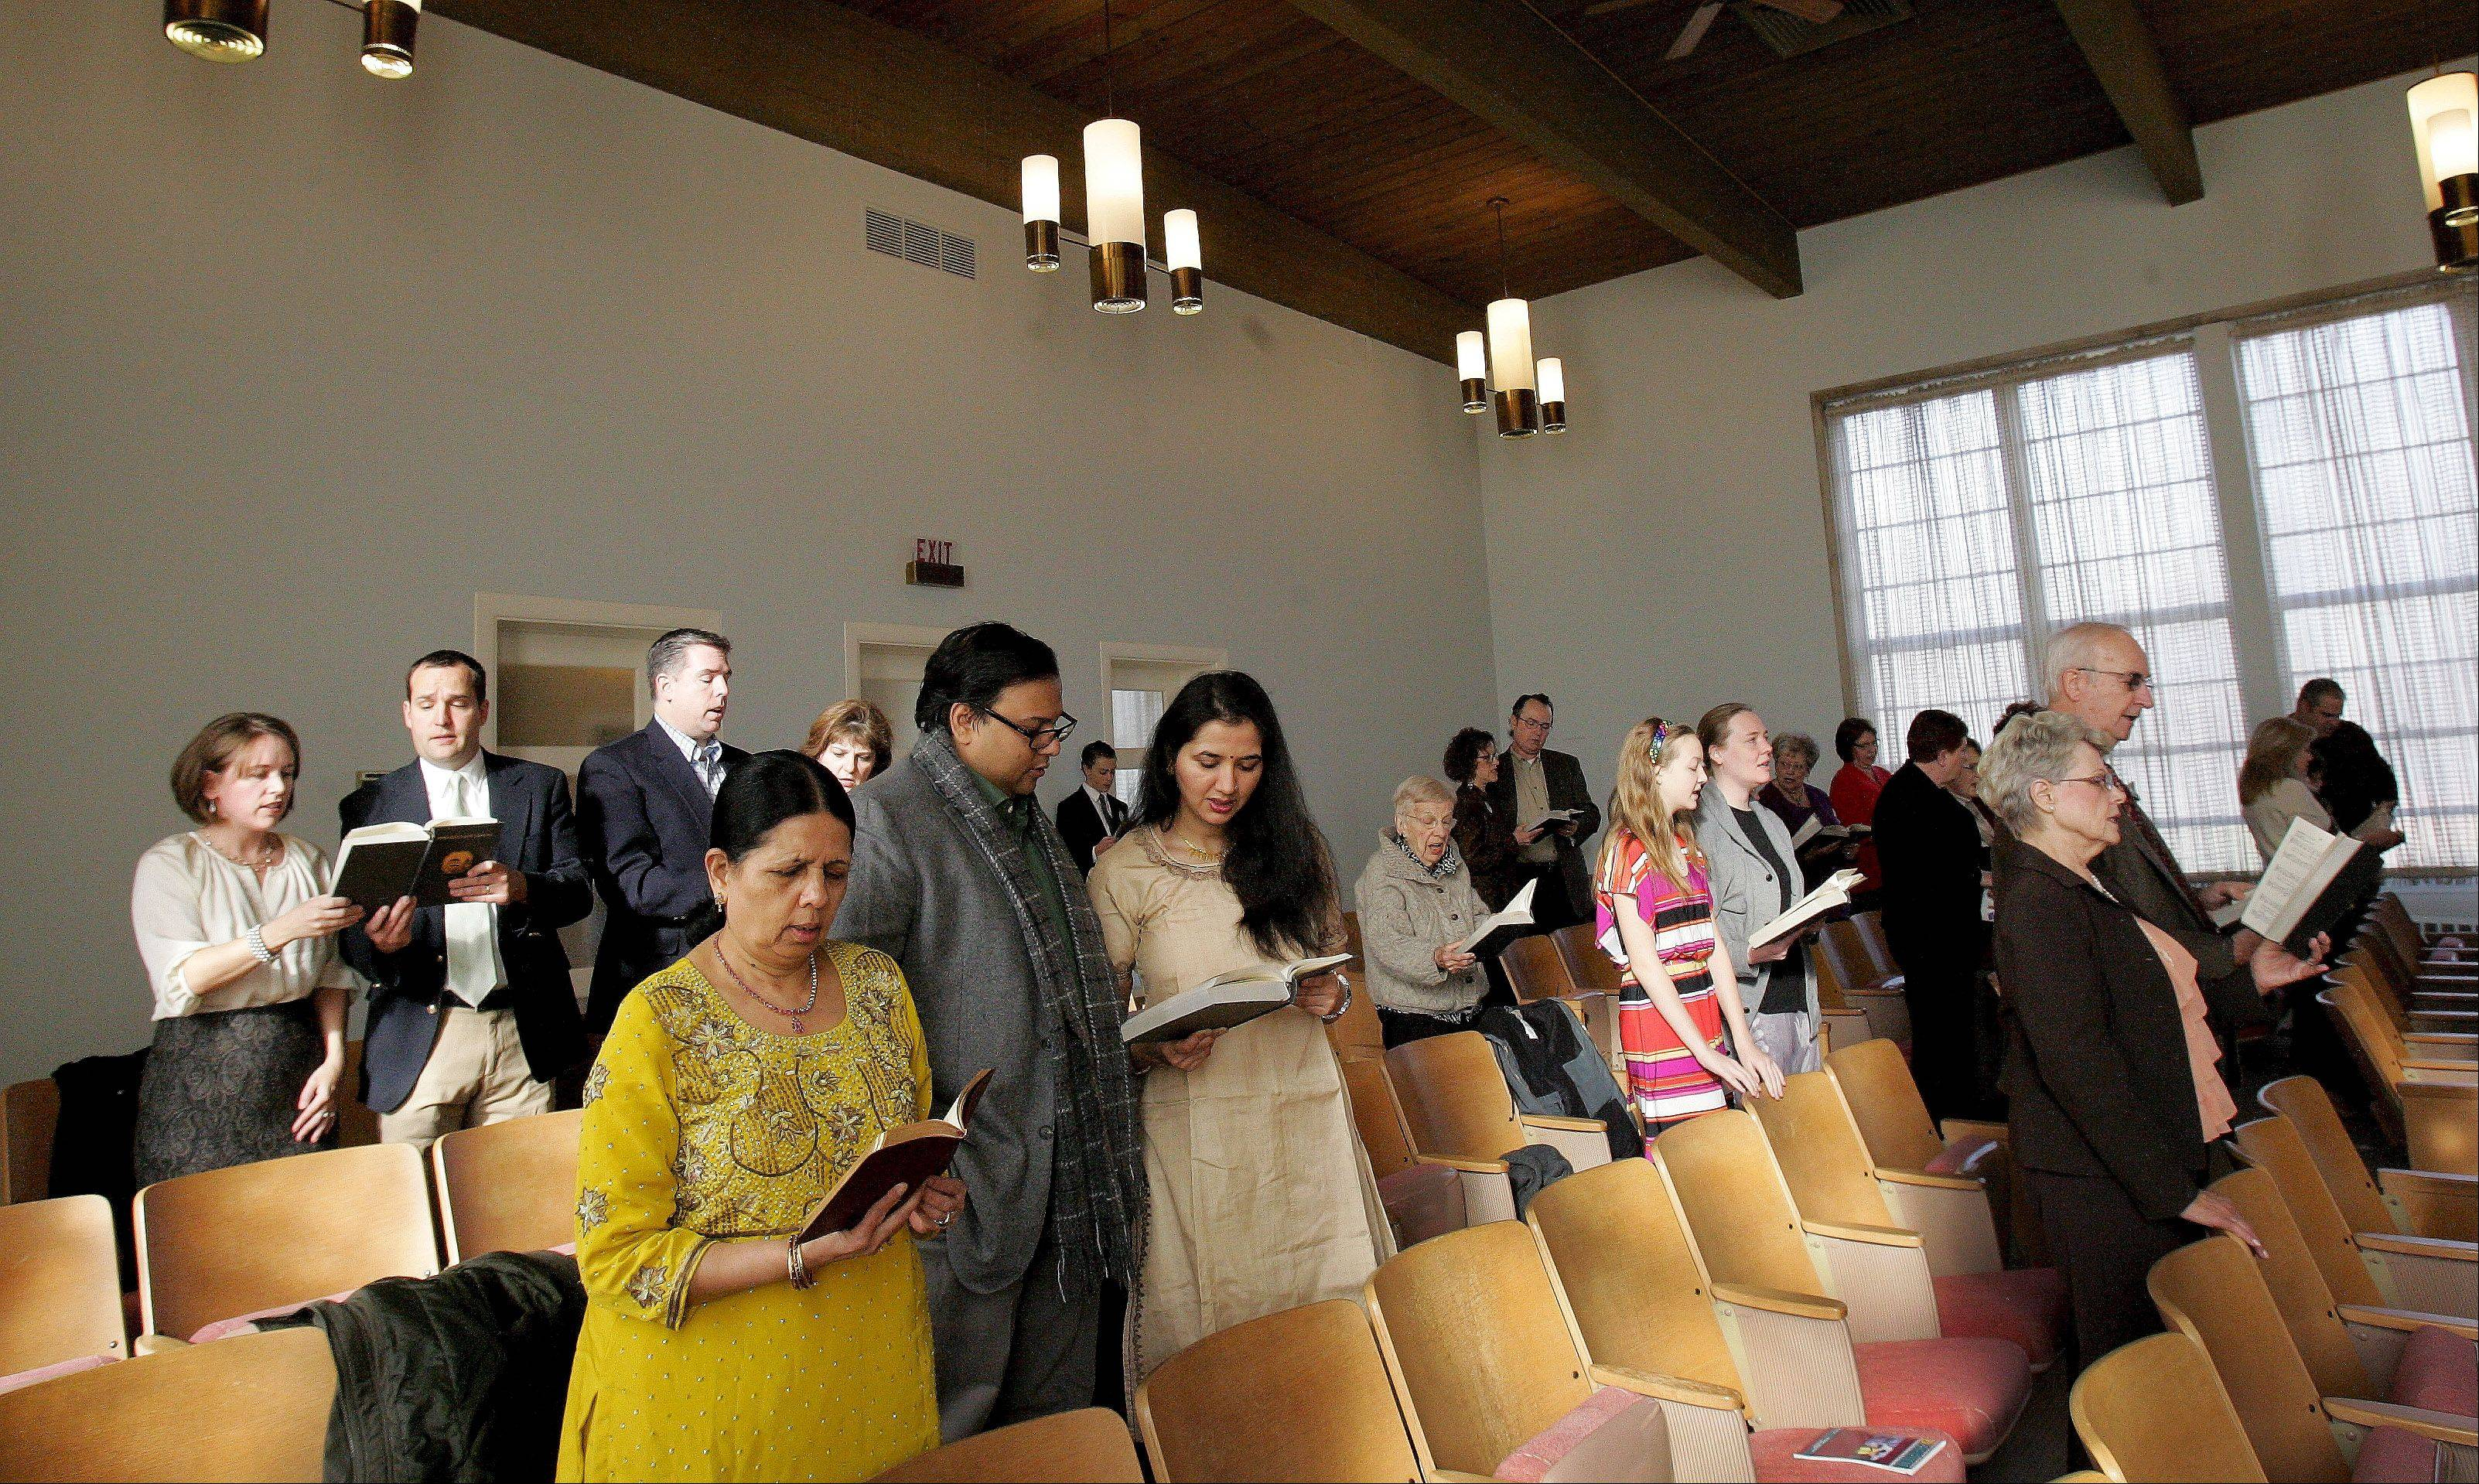 Parishoners take part in a Thanksgiving Day service at First Church of Christ Scientist in Glen Ellyn.